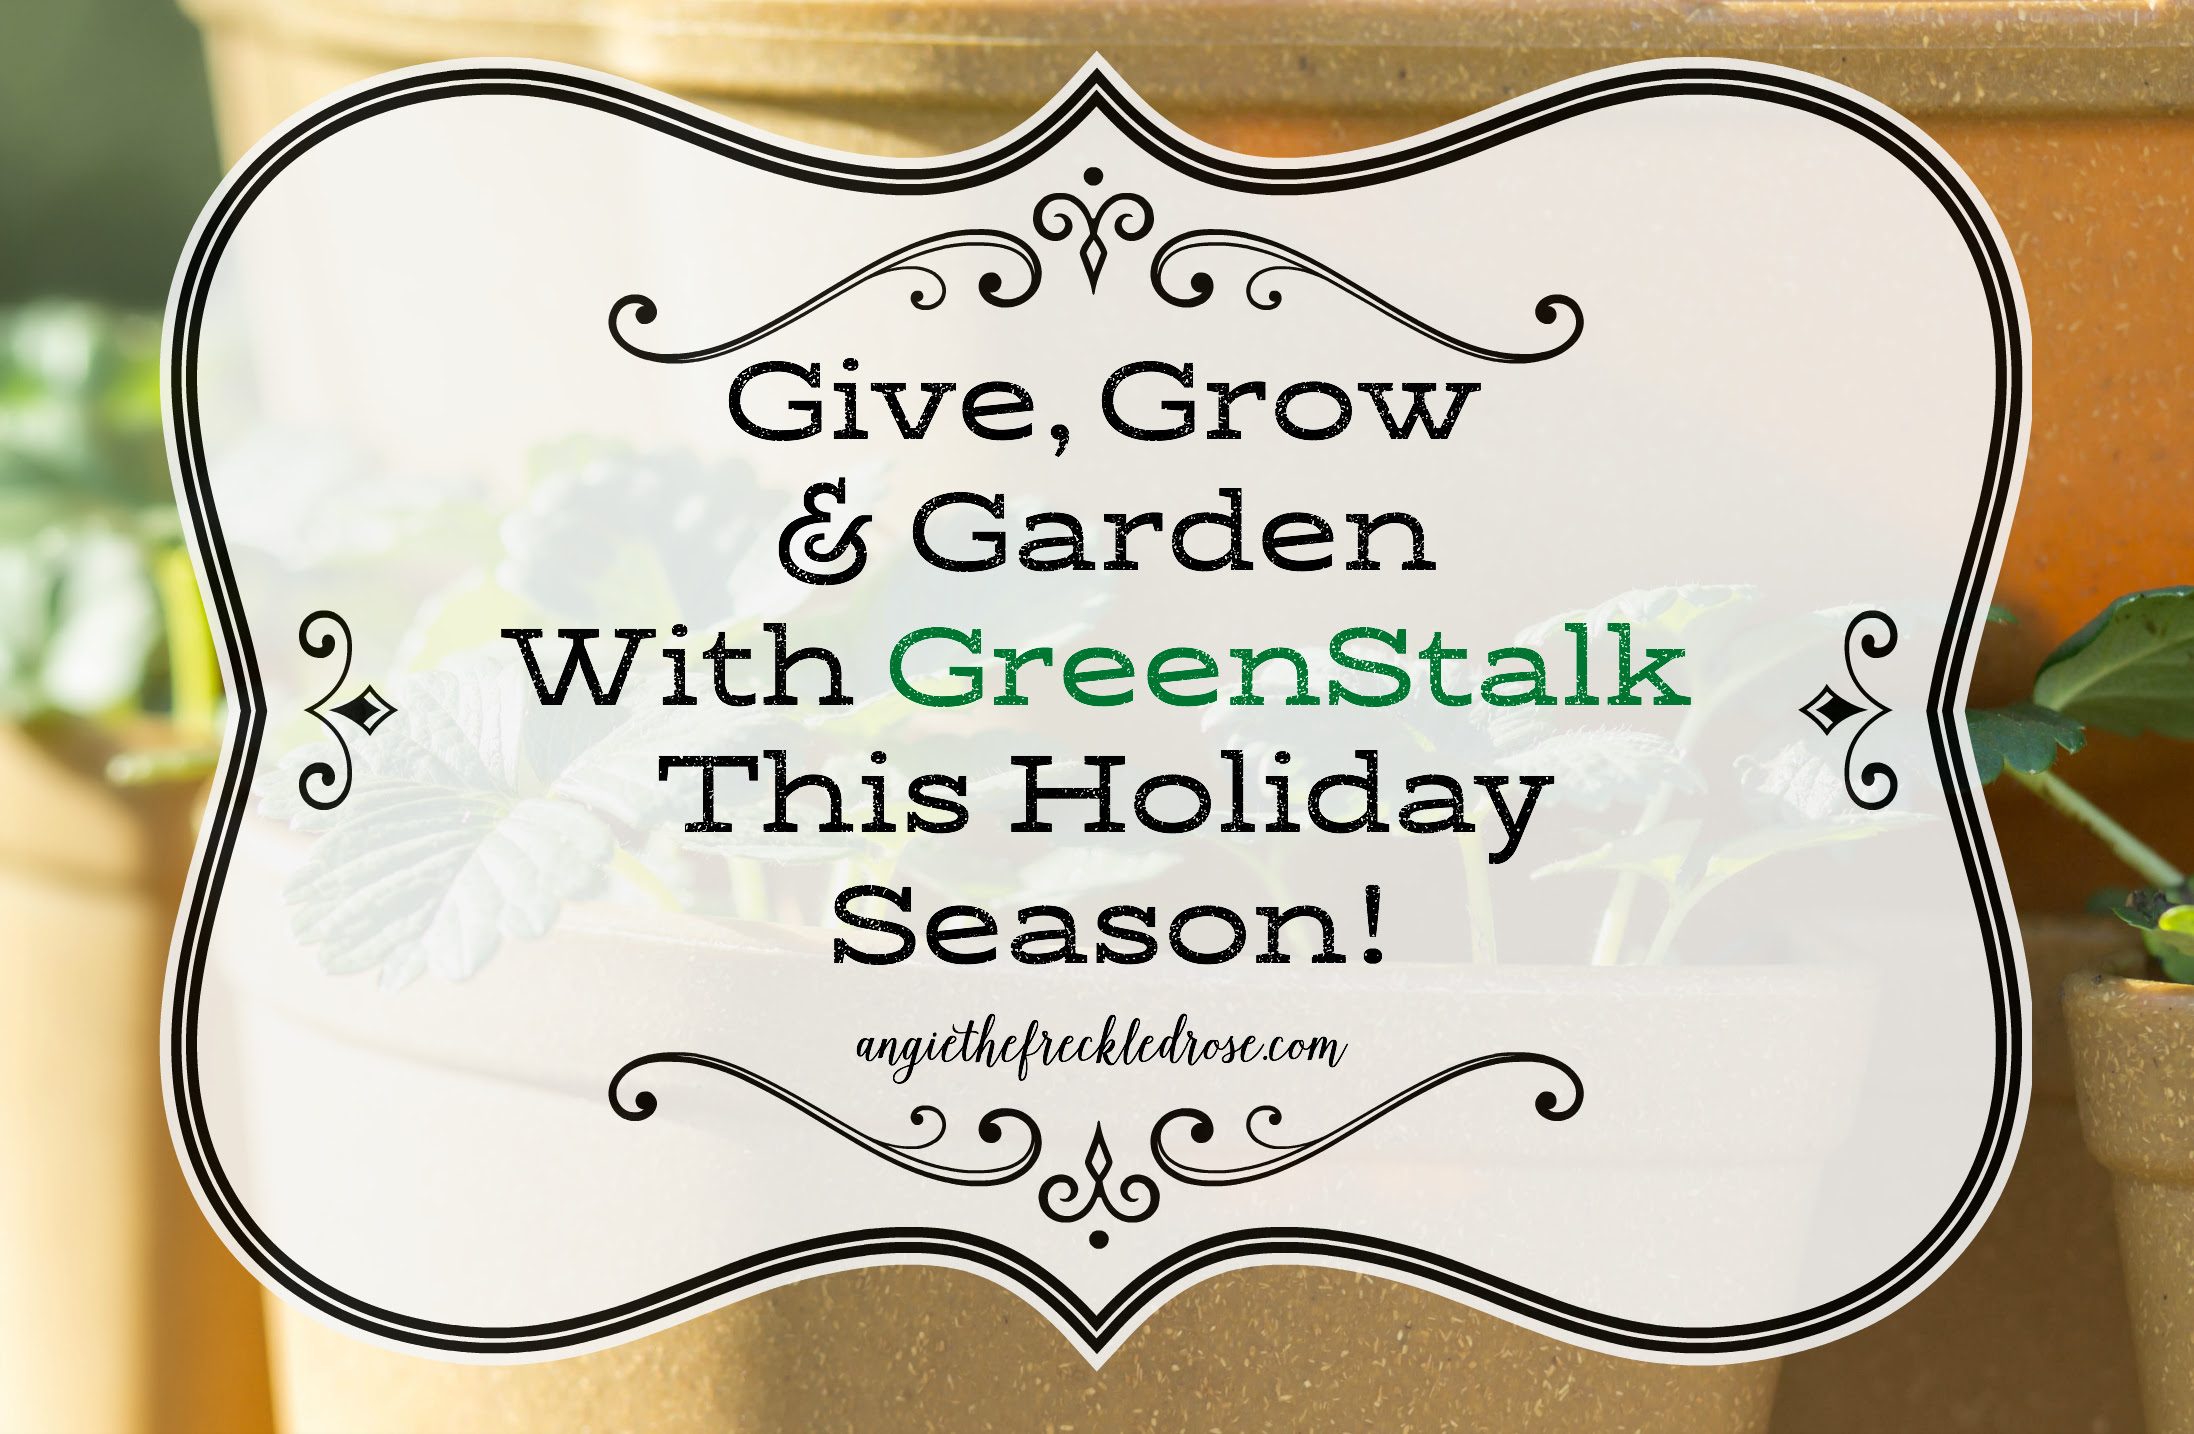 Give, Grow & Garden With Greenstalk This Holiday Season! | angiethefreckledrose.com